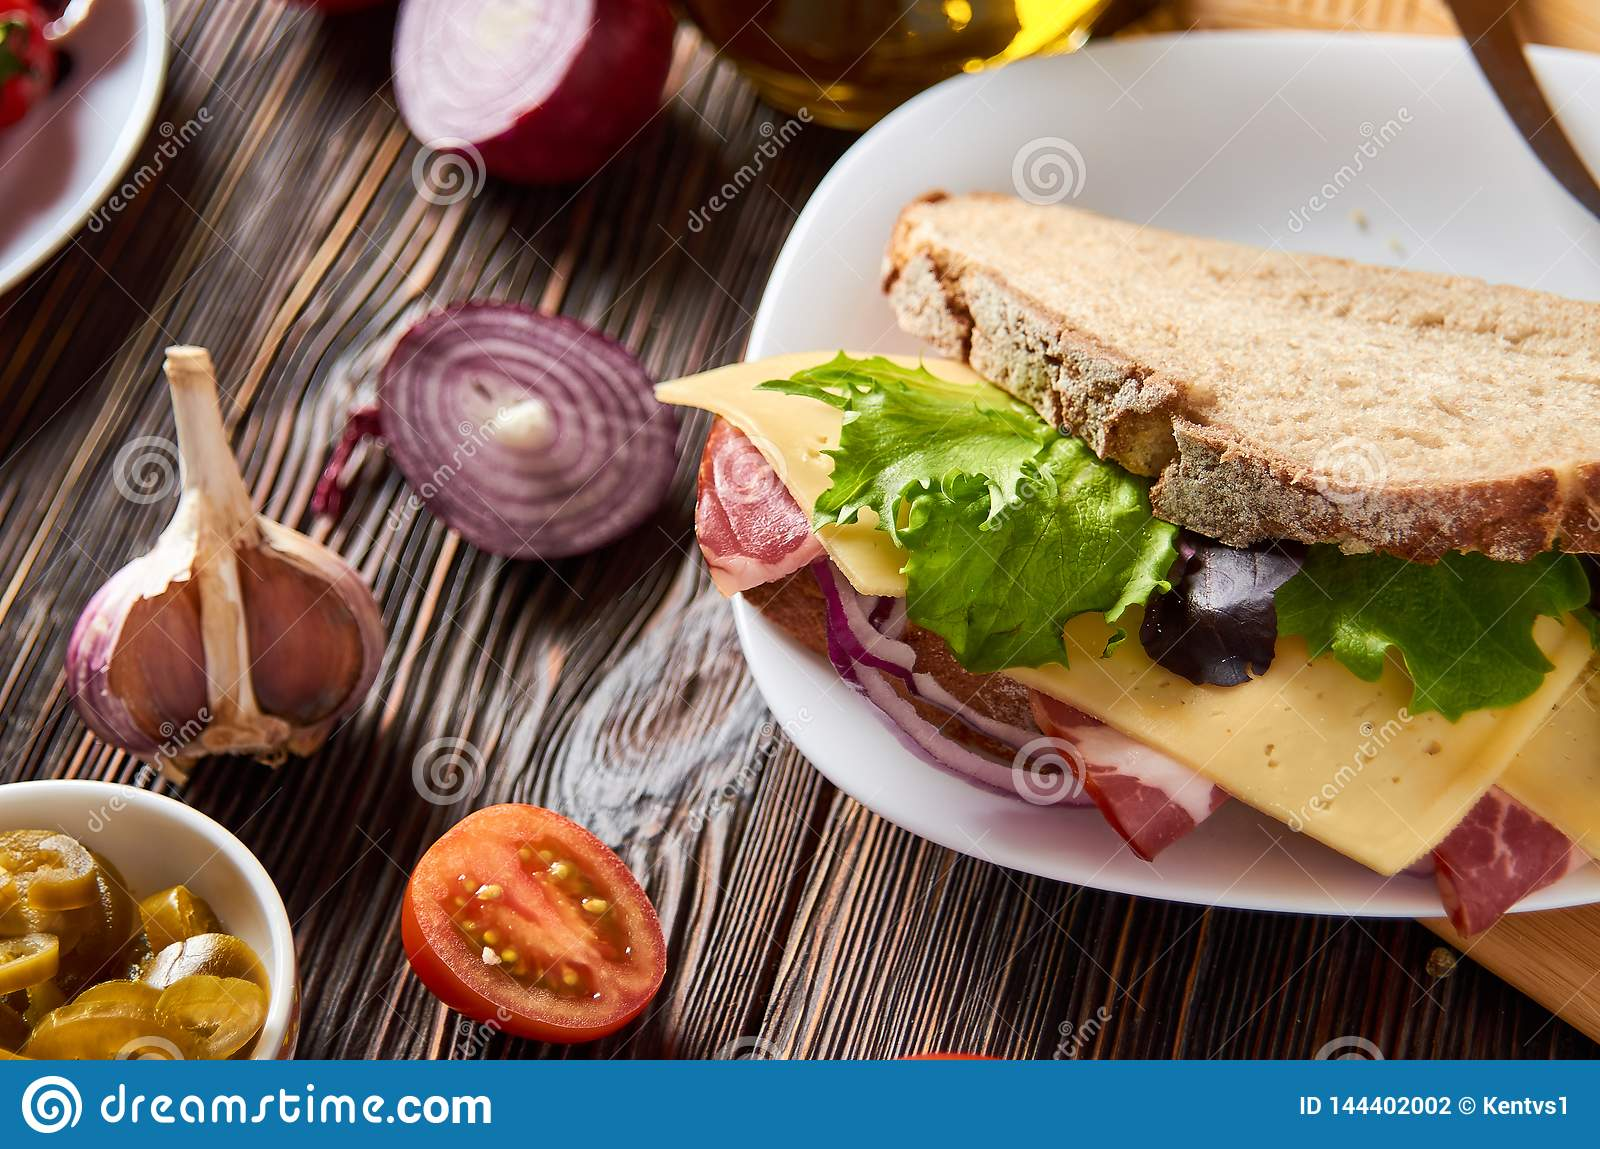 Sandwich with bacon, cheese, garlic, jalapeno pepper and herbs on a plate